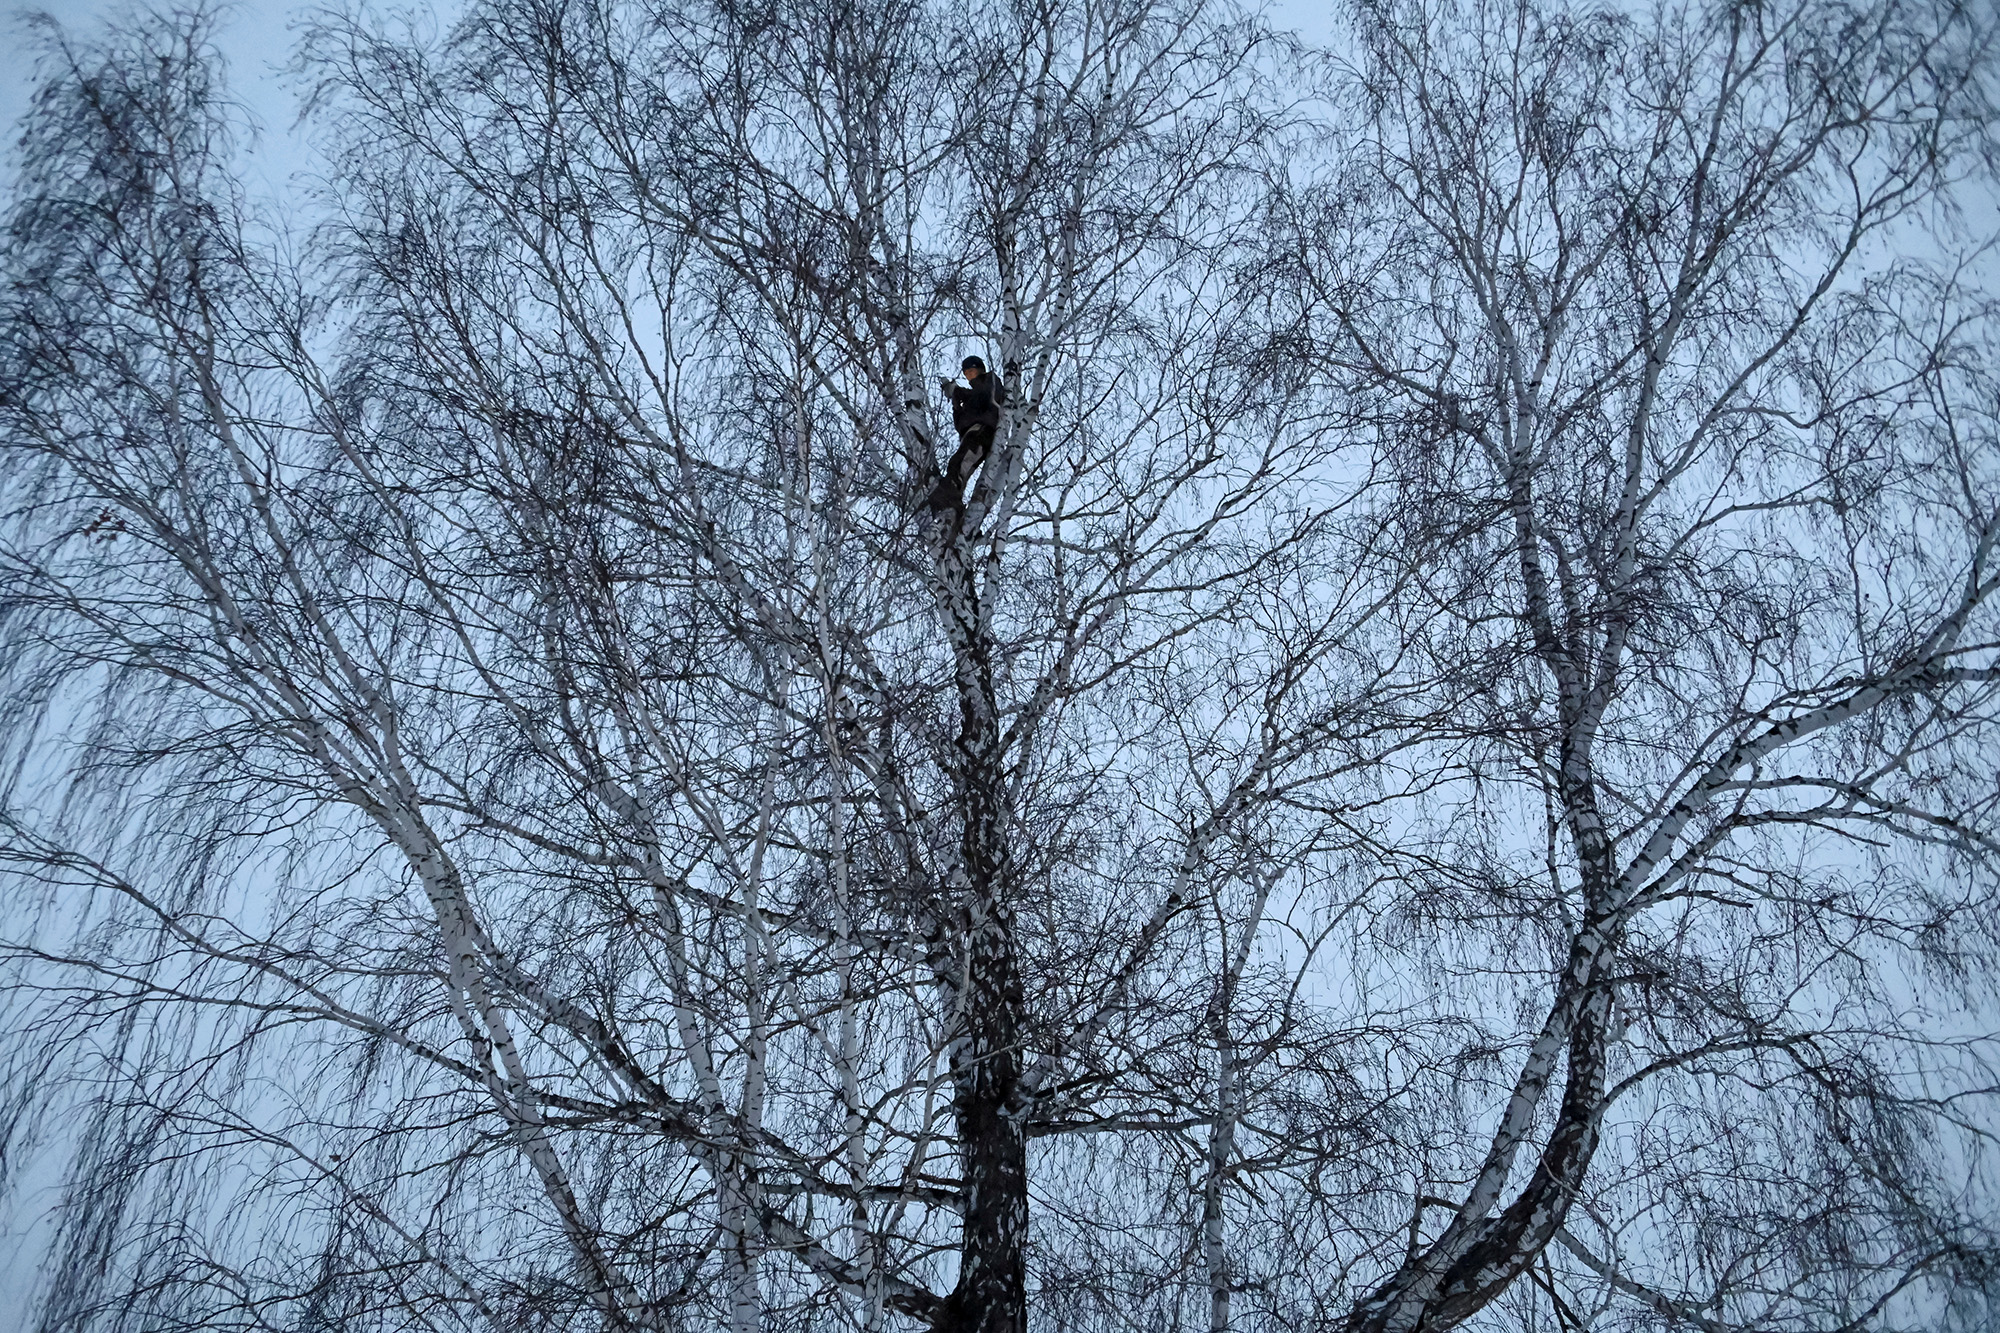 Alexei Dudoladov, student and popular blogger, is seen on a birch tree for better cellular network coverage in his remote Siberian village of Stankevichi, Russia November 13, 2020. Picture taken November 13, 2020. REUTERS/Alexey Malgavko